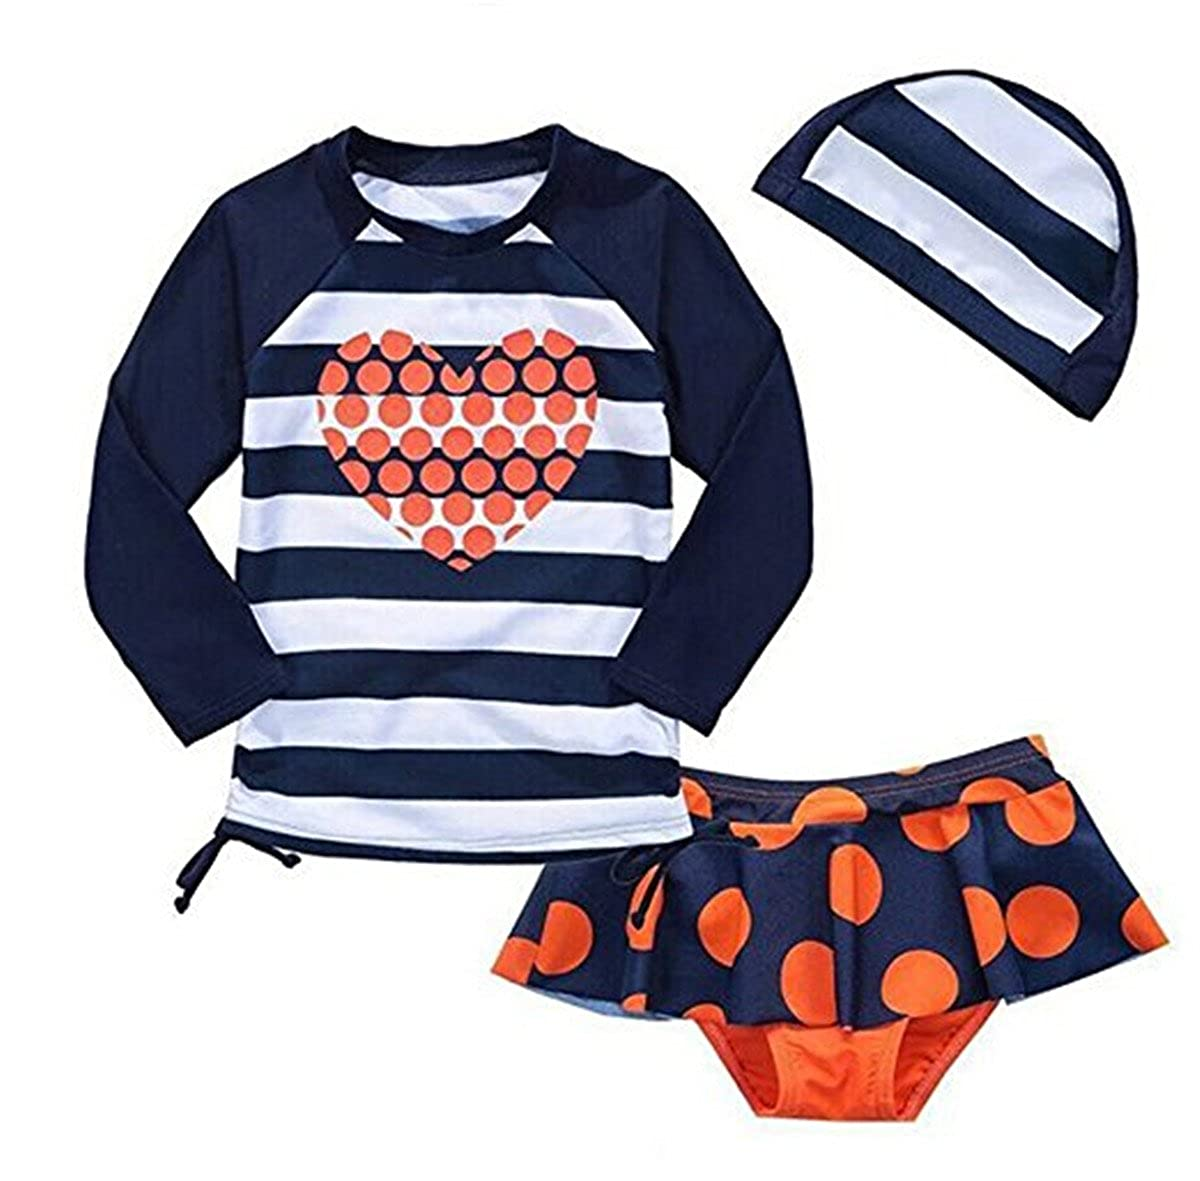 UV JELEUON Baby Girls Kids Toddler 2 Pcs Long Sleeve Swimsuit with Caps Rash Guard UPF 50